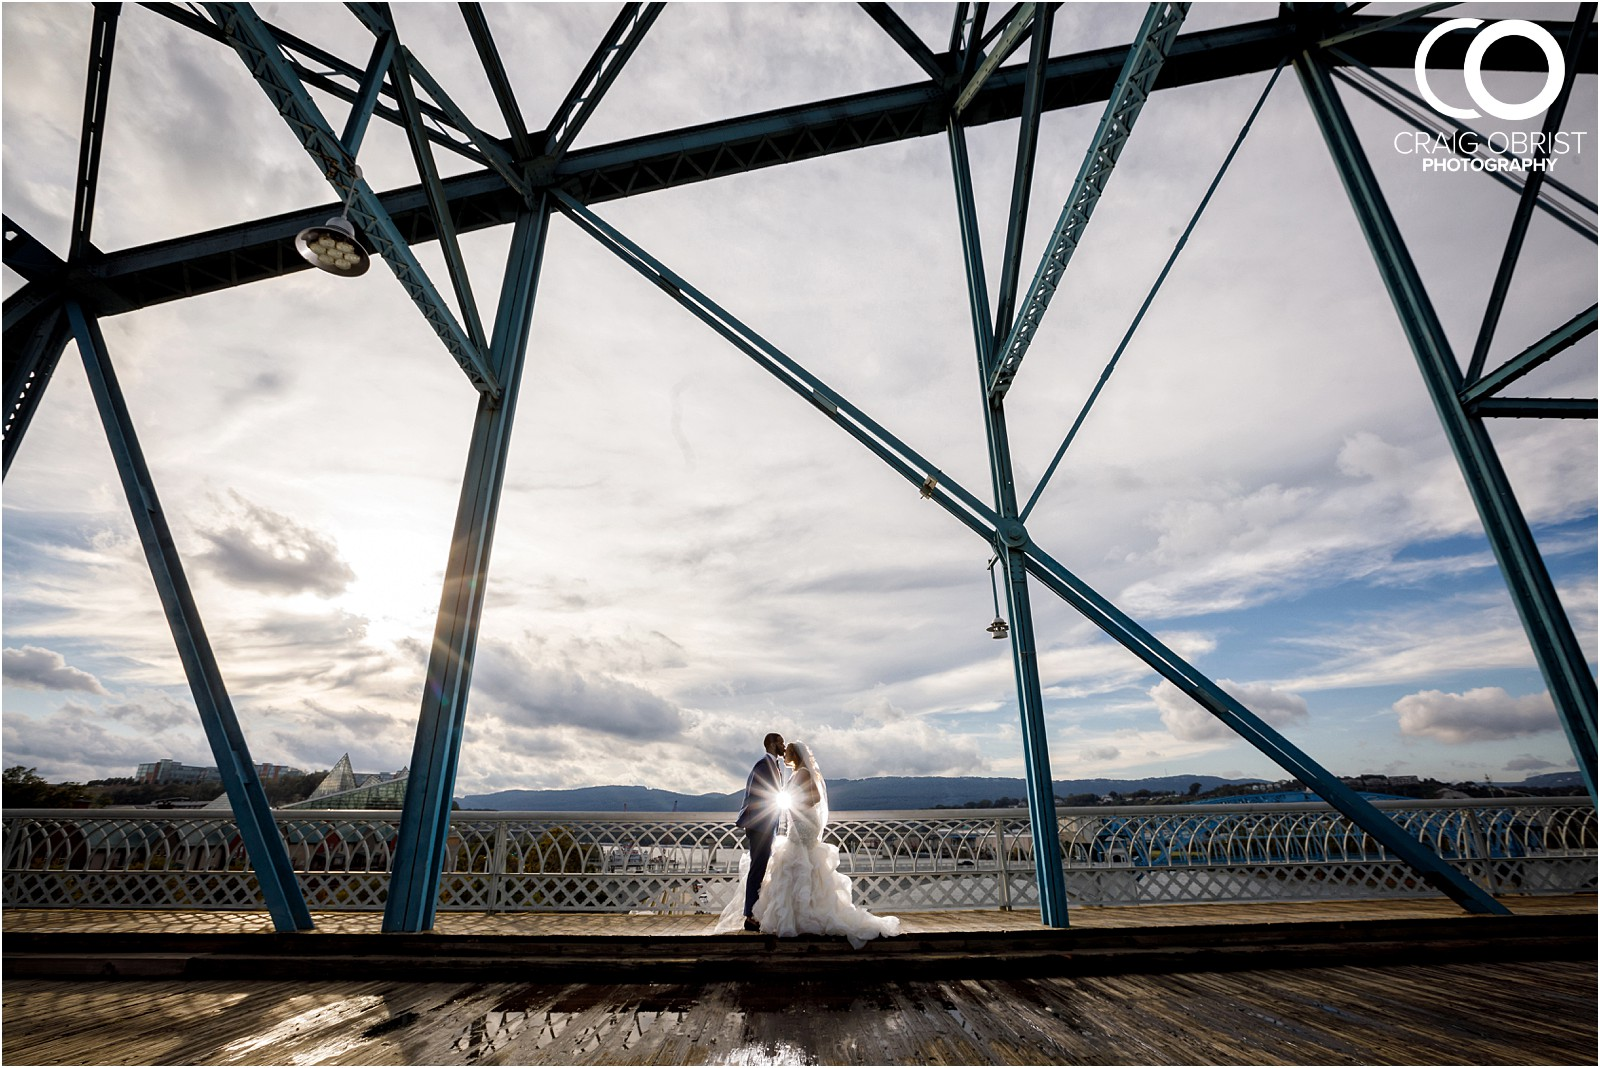 Stratton Hall Chattanooga Walnut Street Bridge Wedding Portraits_0044.jpg